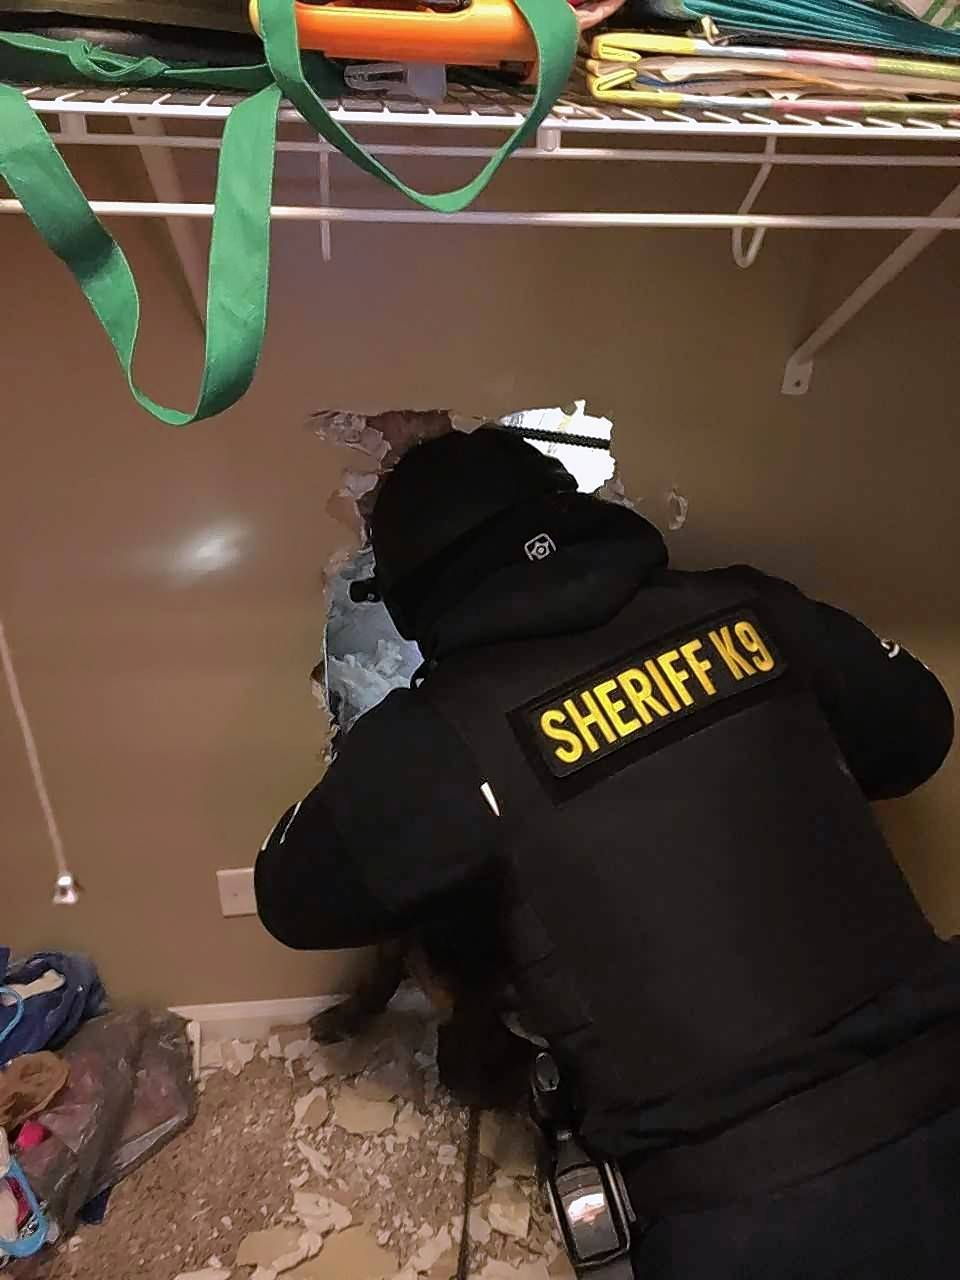 The Lake County Sheriff's Warrants team and U.S. Marshals apprehended Matthew T. Heidbrick from an attic Thursday morning, reports said. They breached a wall and the police canine located the fugitive, police said.